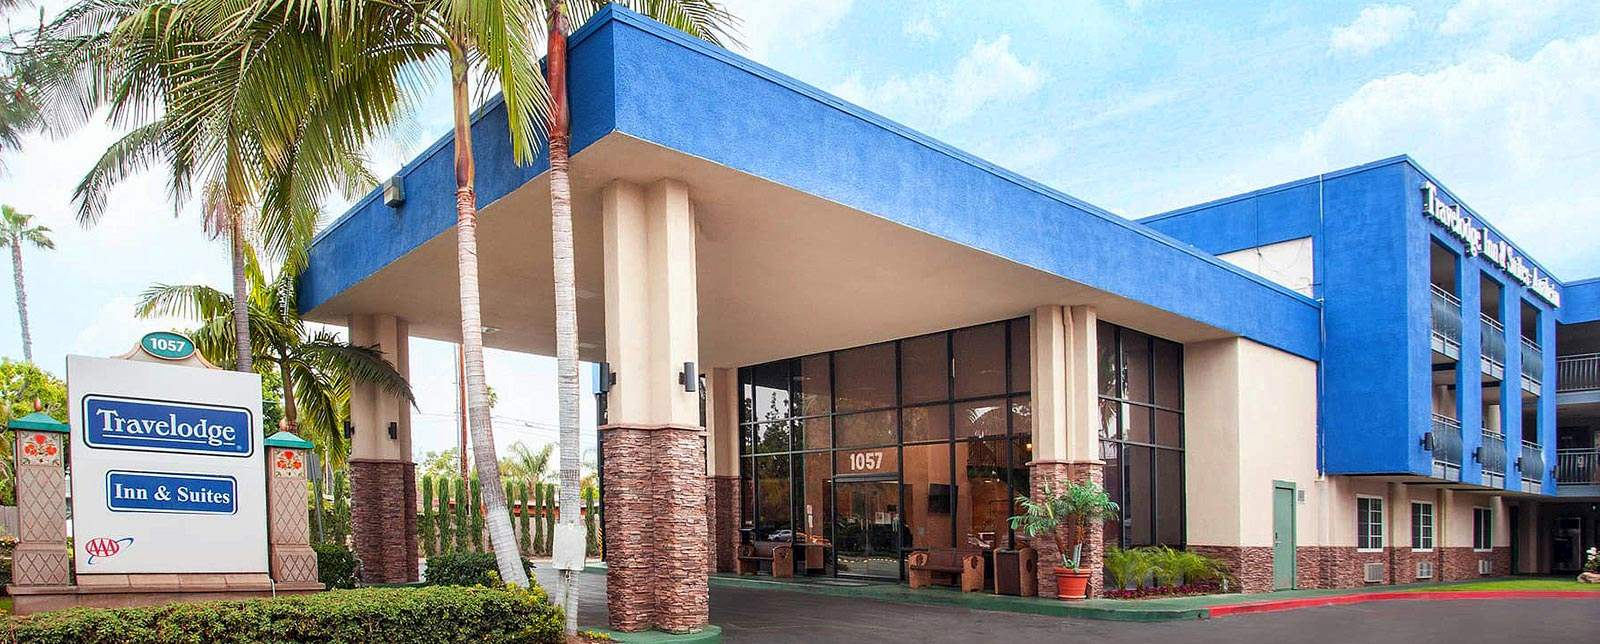 Travelodge Anaheim Inn & Suites California